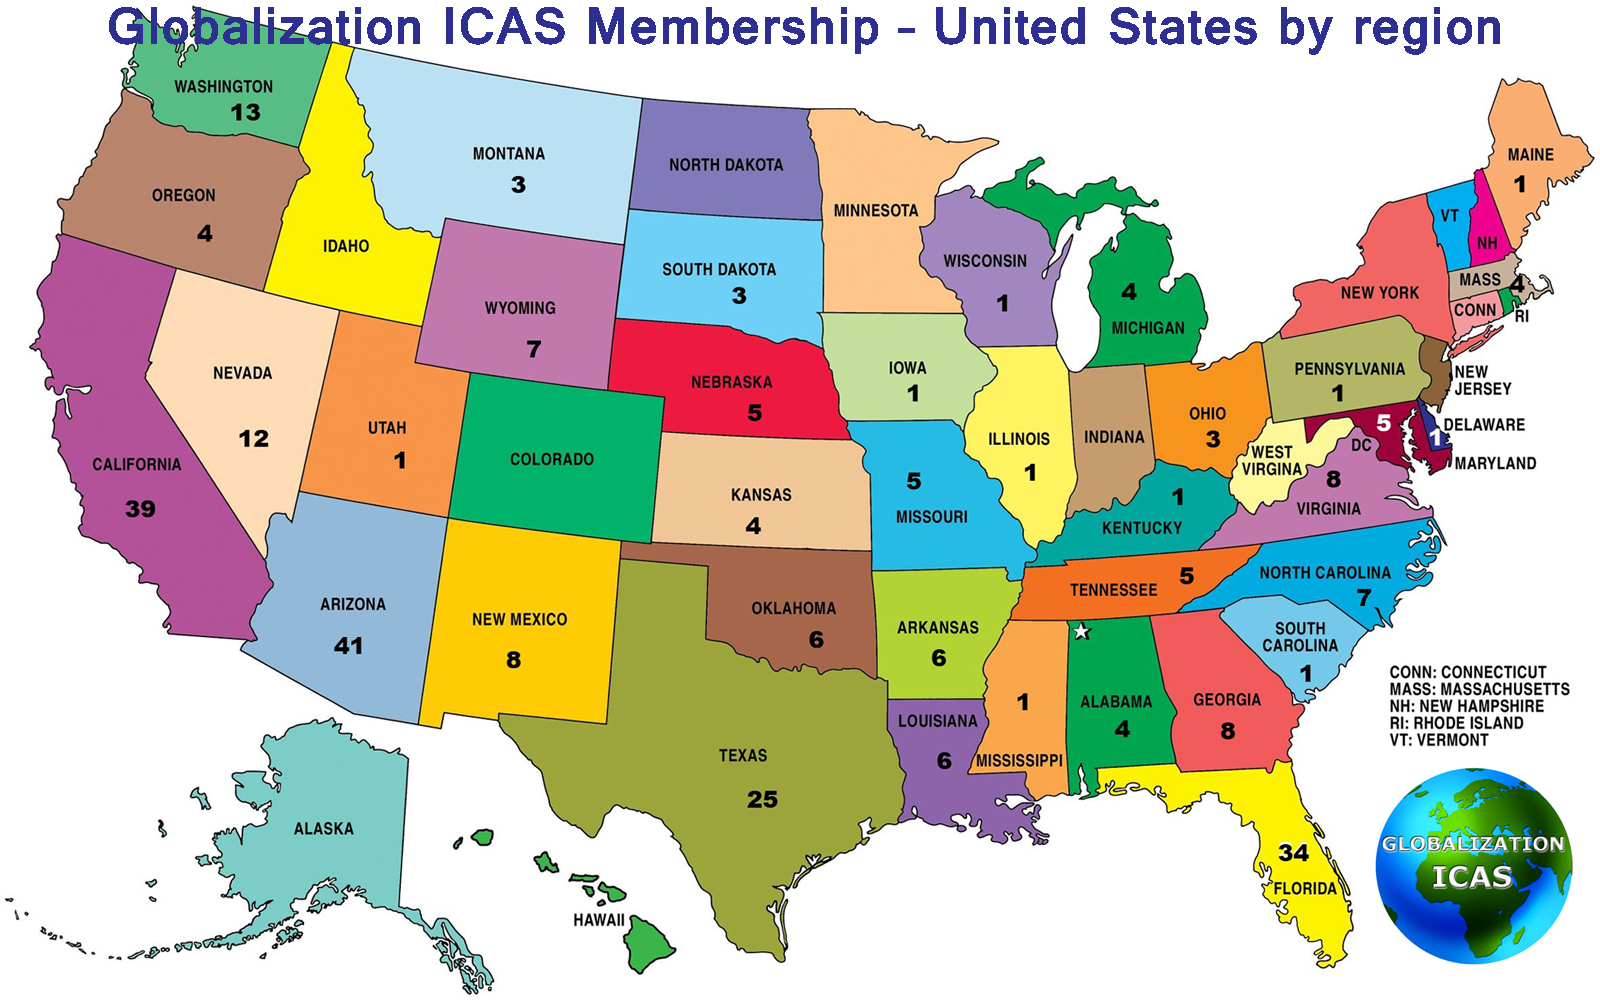 Directory Of Membership United States Globalization ICAS Looney - Us map boston